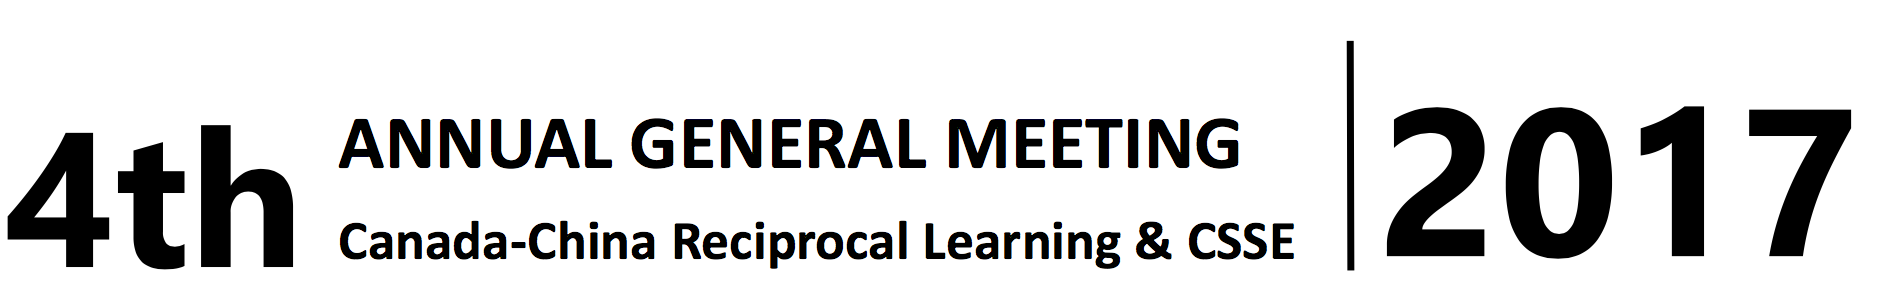 4th Canada-China Reciprocal Learning & CSSE Annual General Meeting